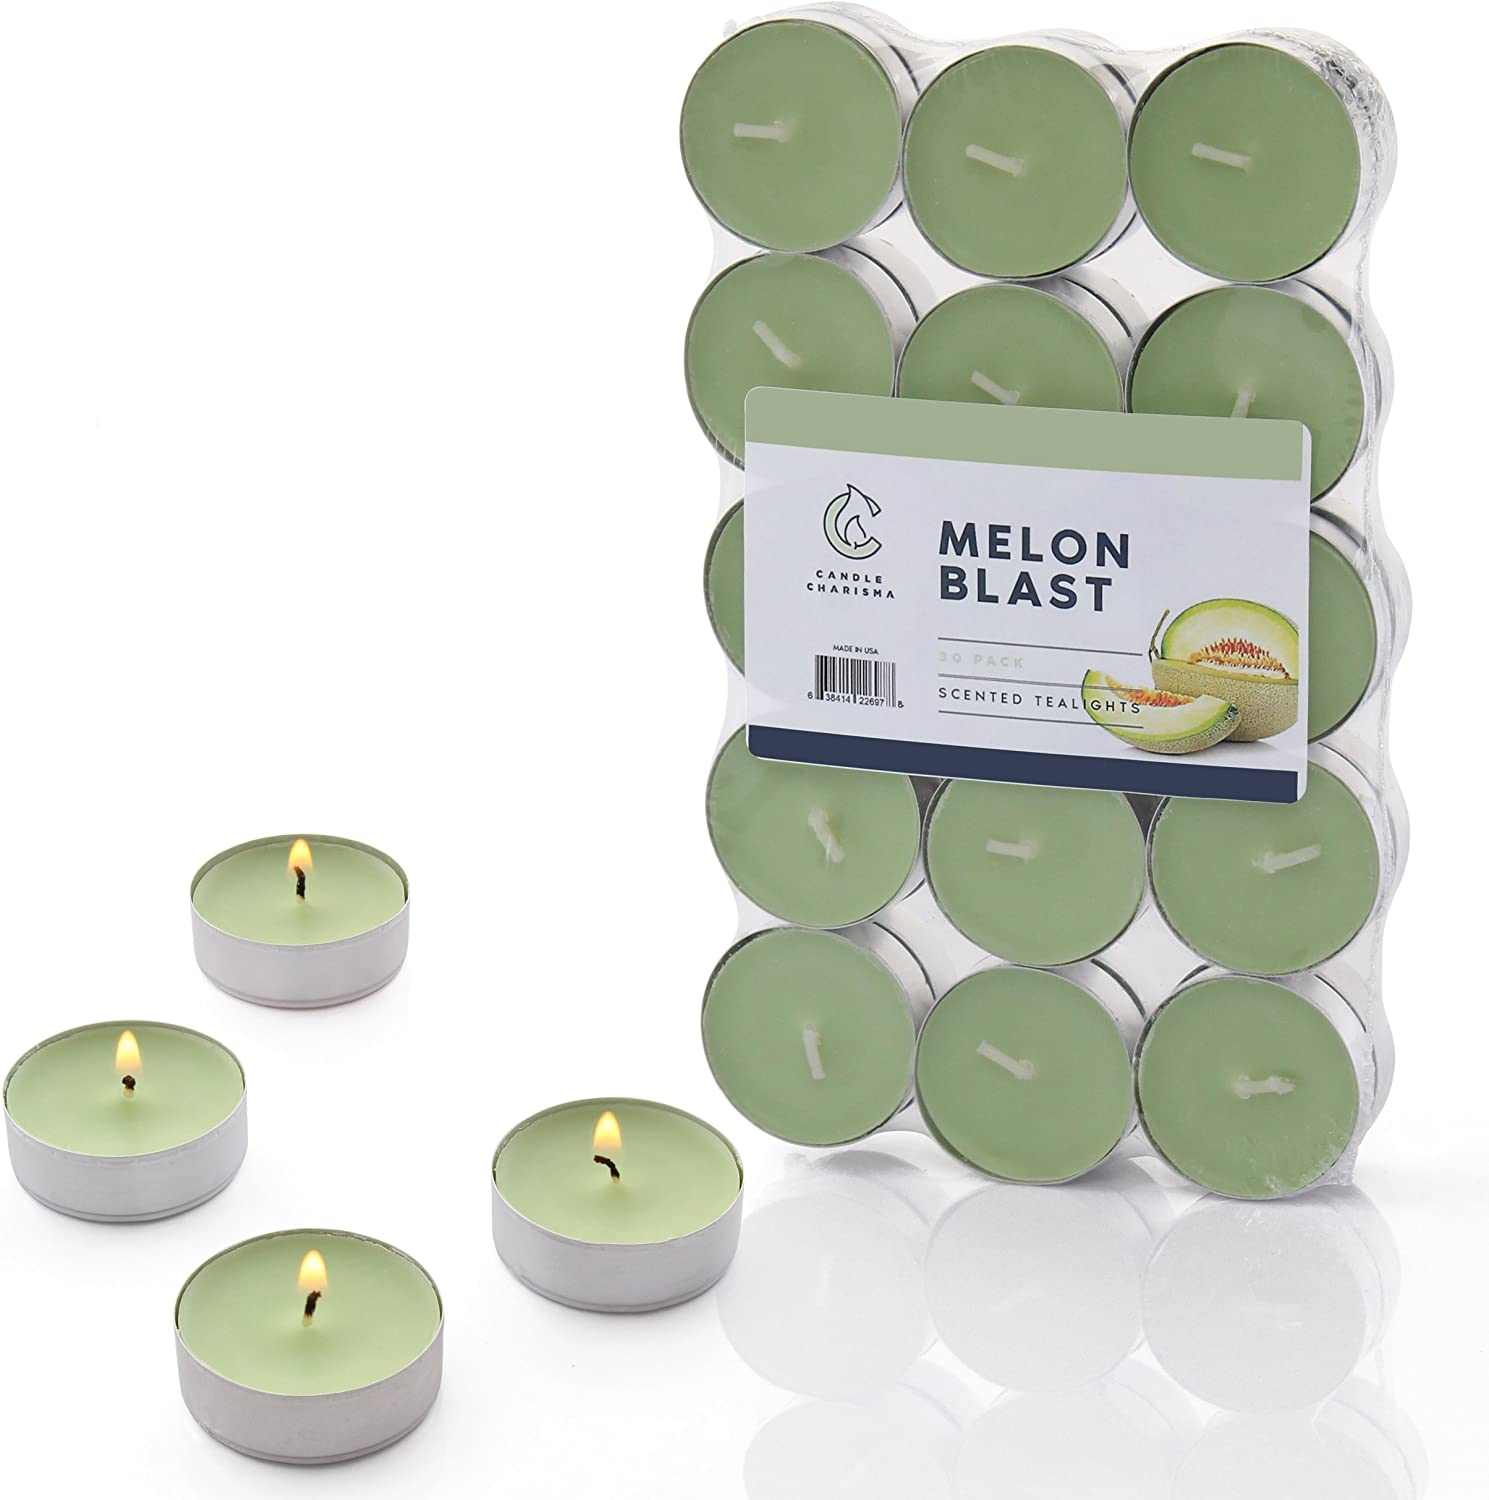 Melon Blast Tealights Fruit Scented Candles - 30 Pack - Made in USA